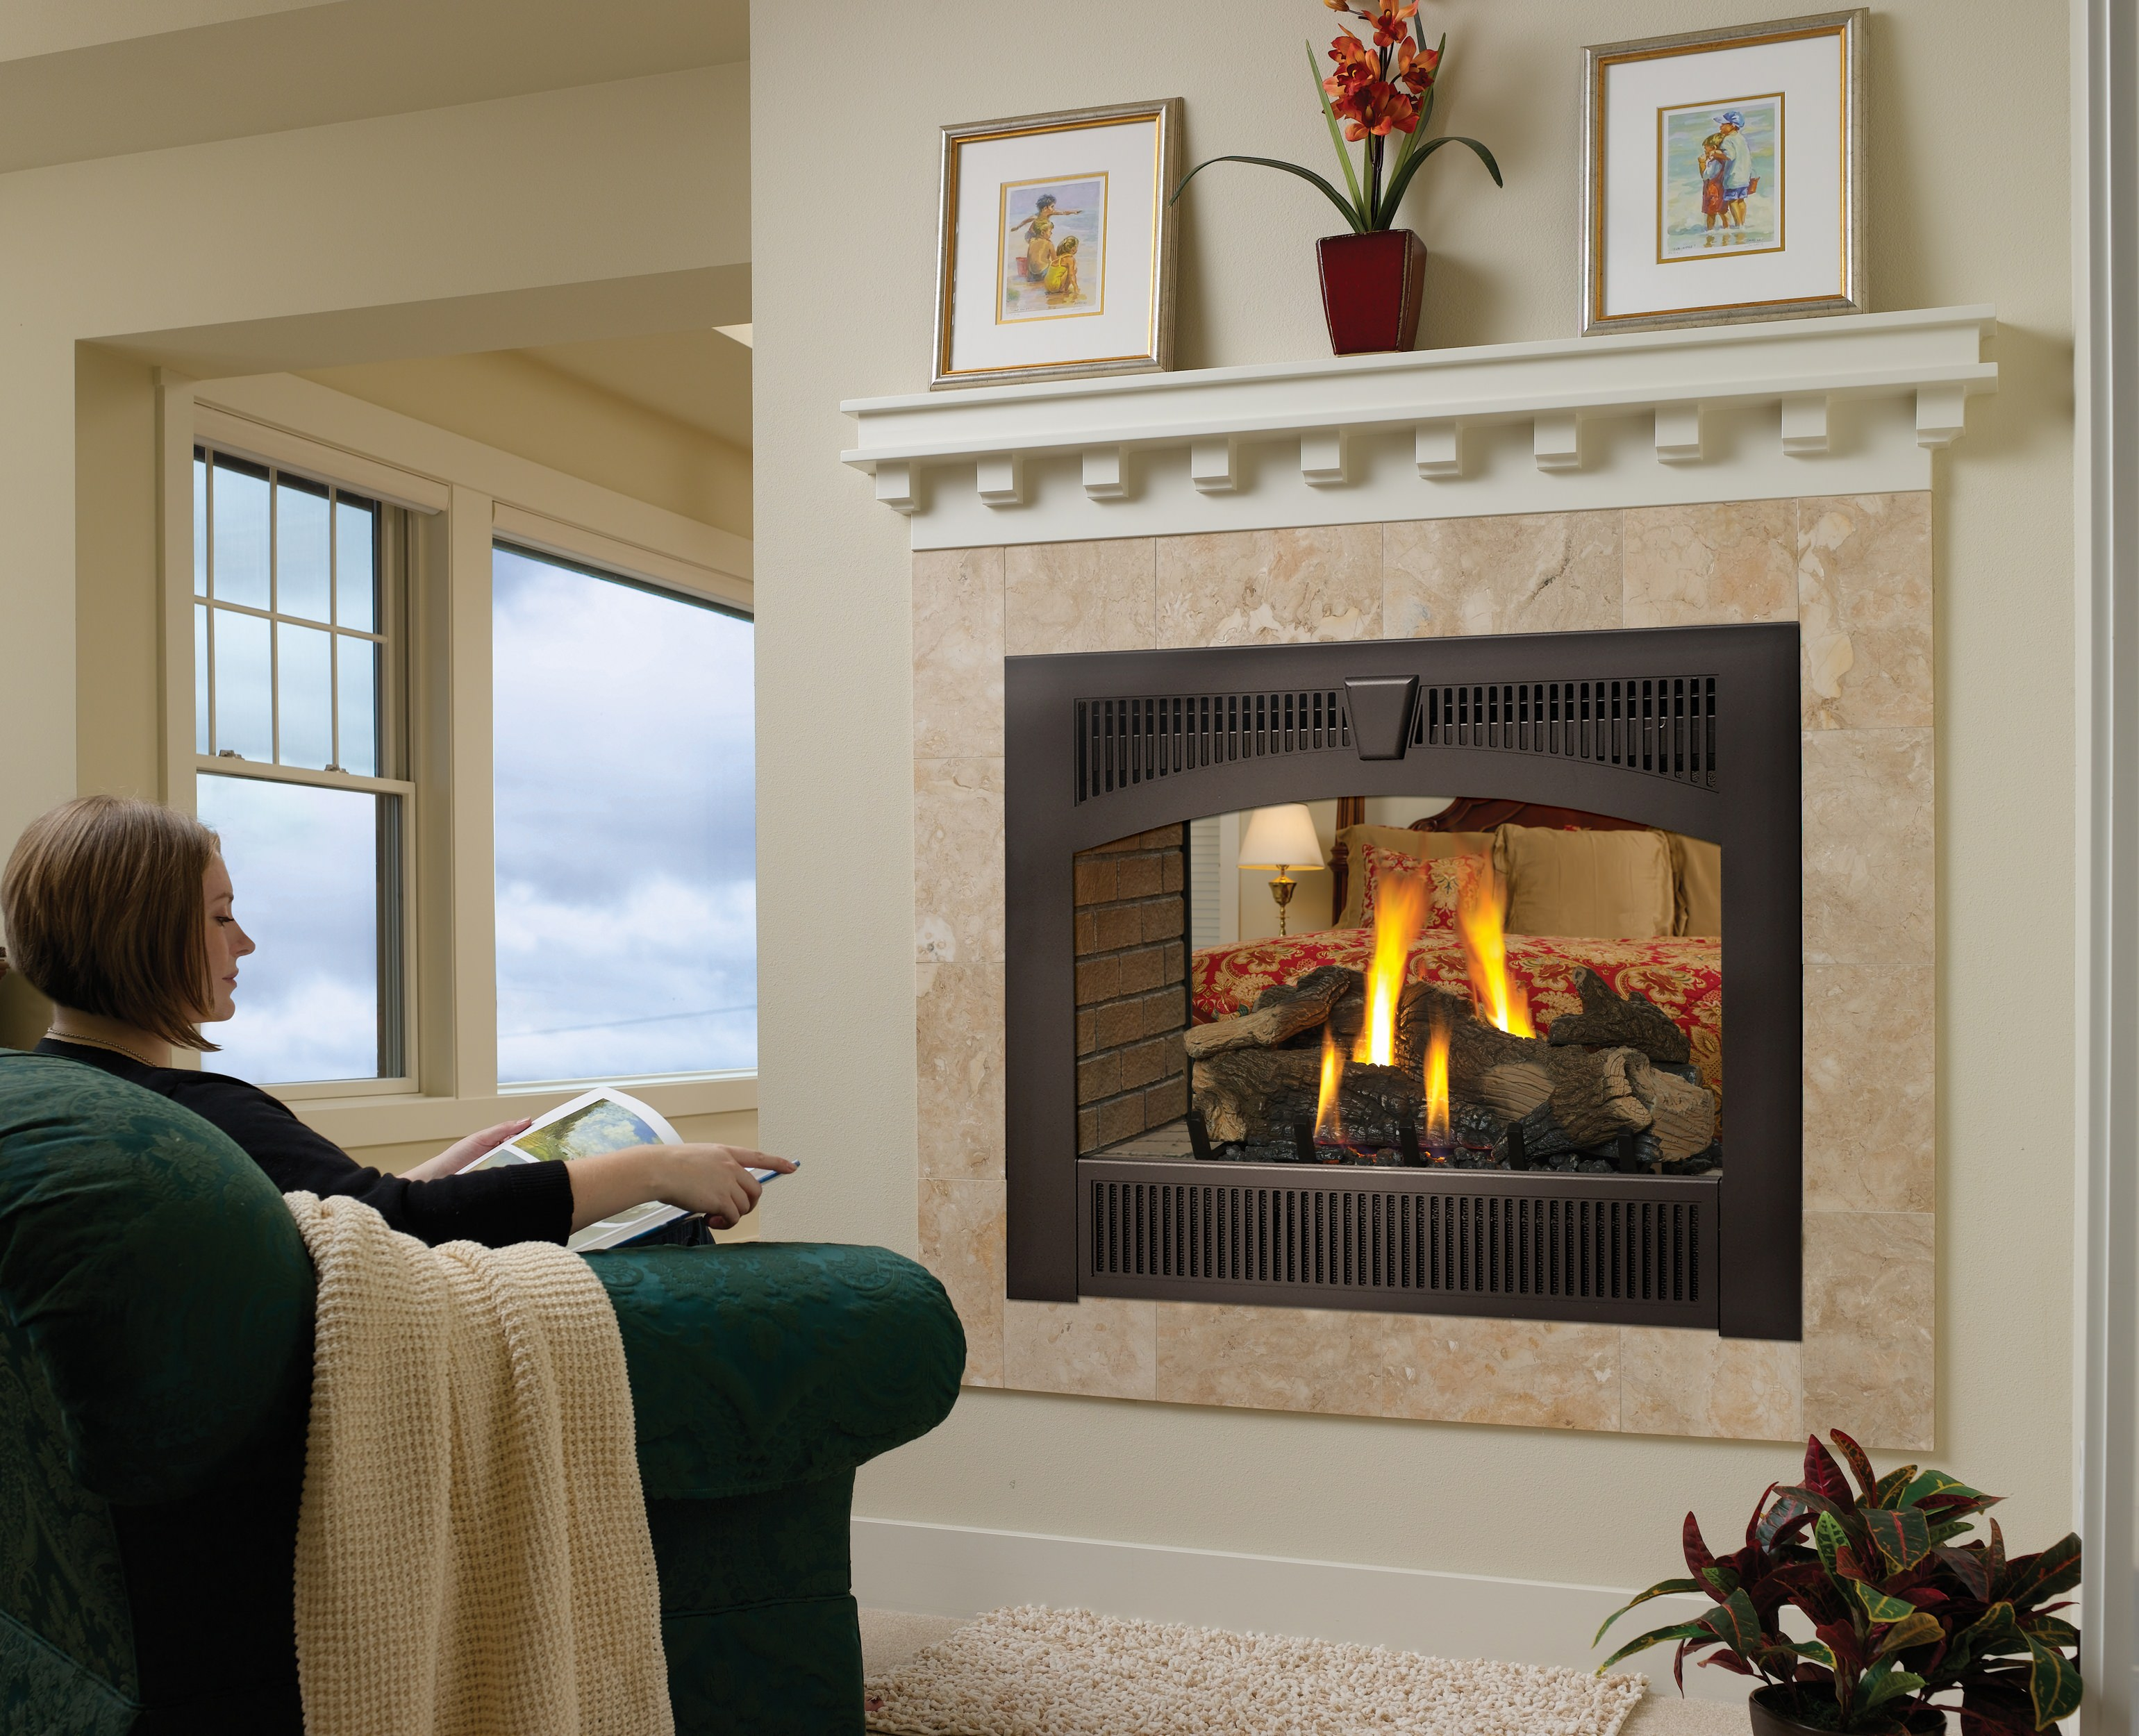 Fireplace Xtrordinair 864 See-Thru Gas Fireplace with Legacy Carbon Patina face and Tan Stacked Firebrick